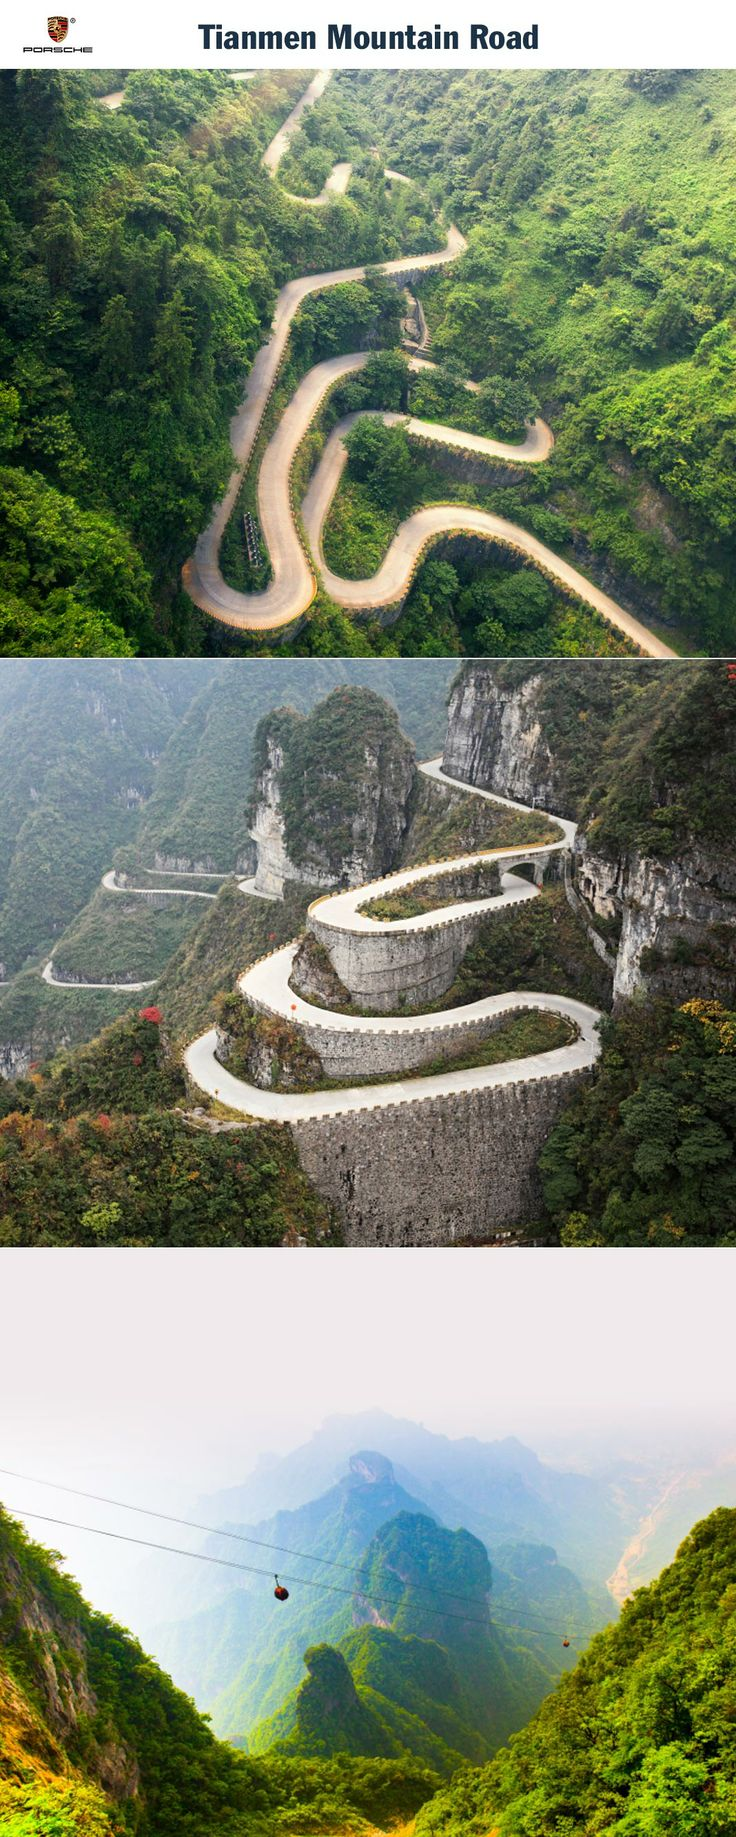 Tianmen Shan Big Gate Road Extreme Drives The 10 Scariest Highways For White Knuckle Road Trips